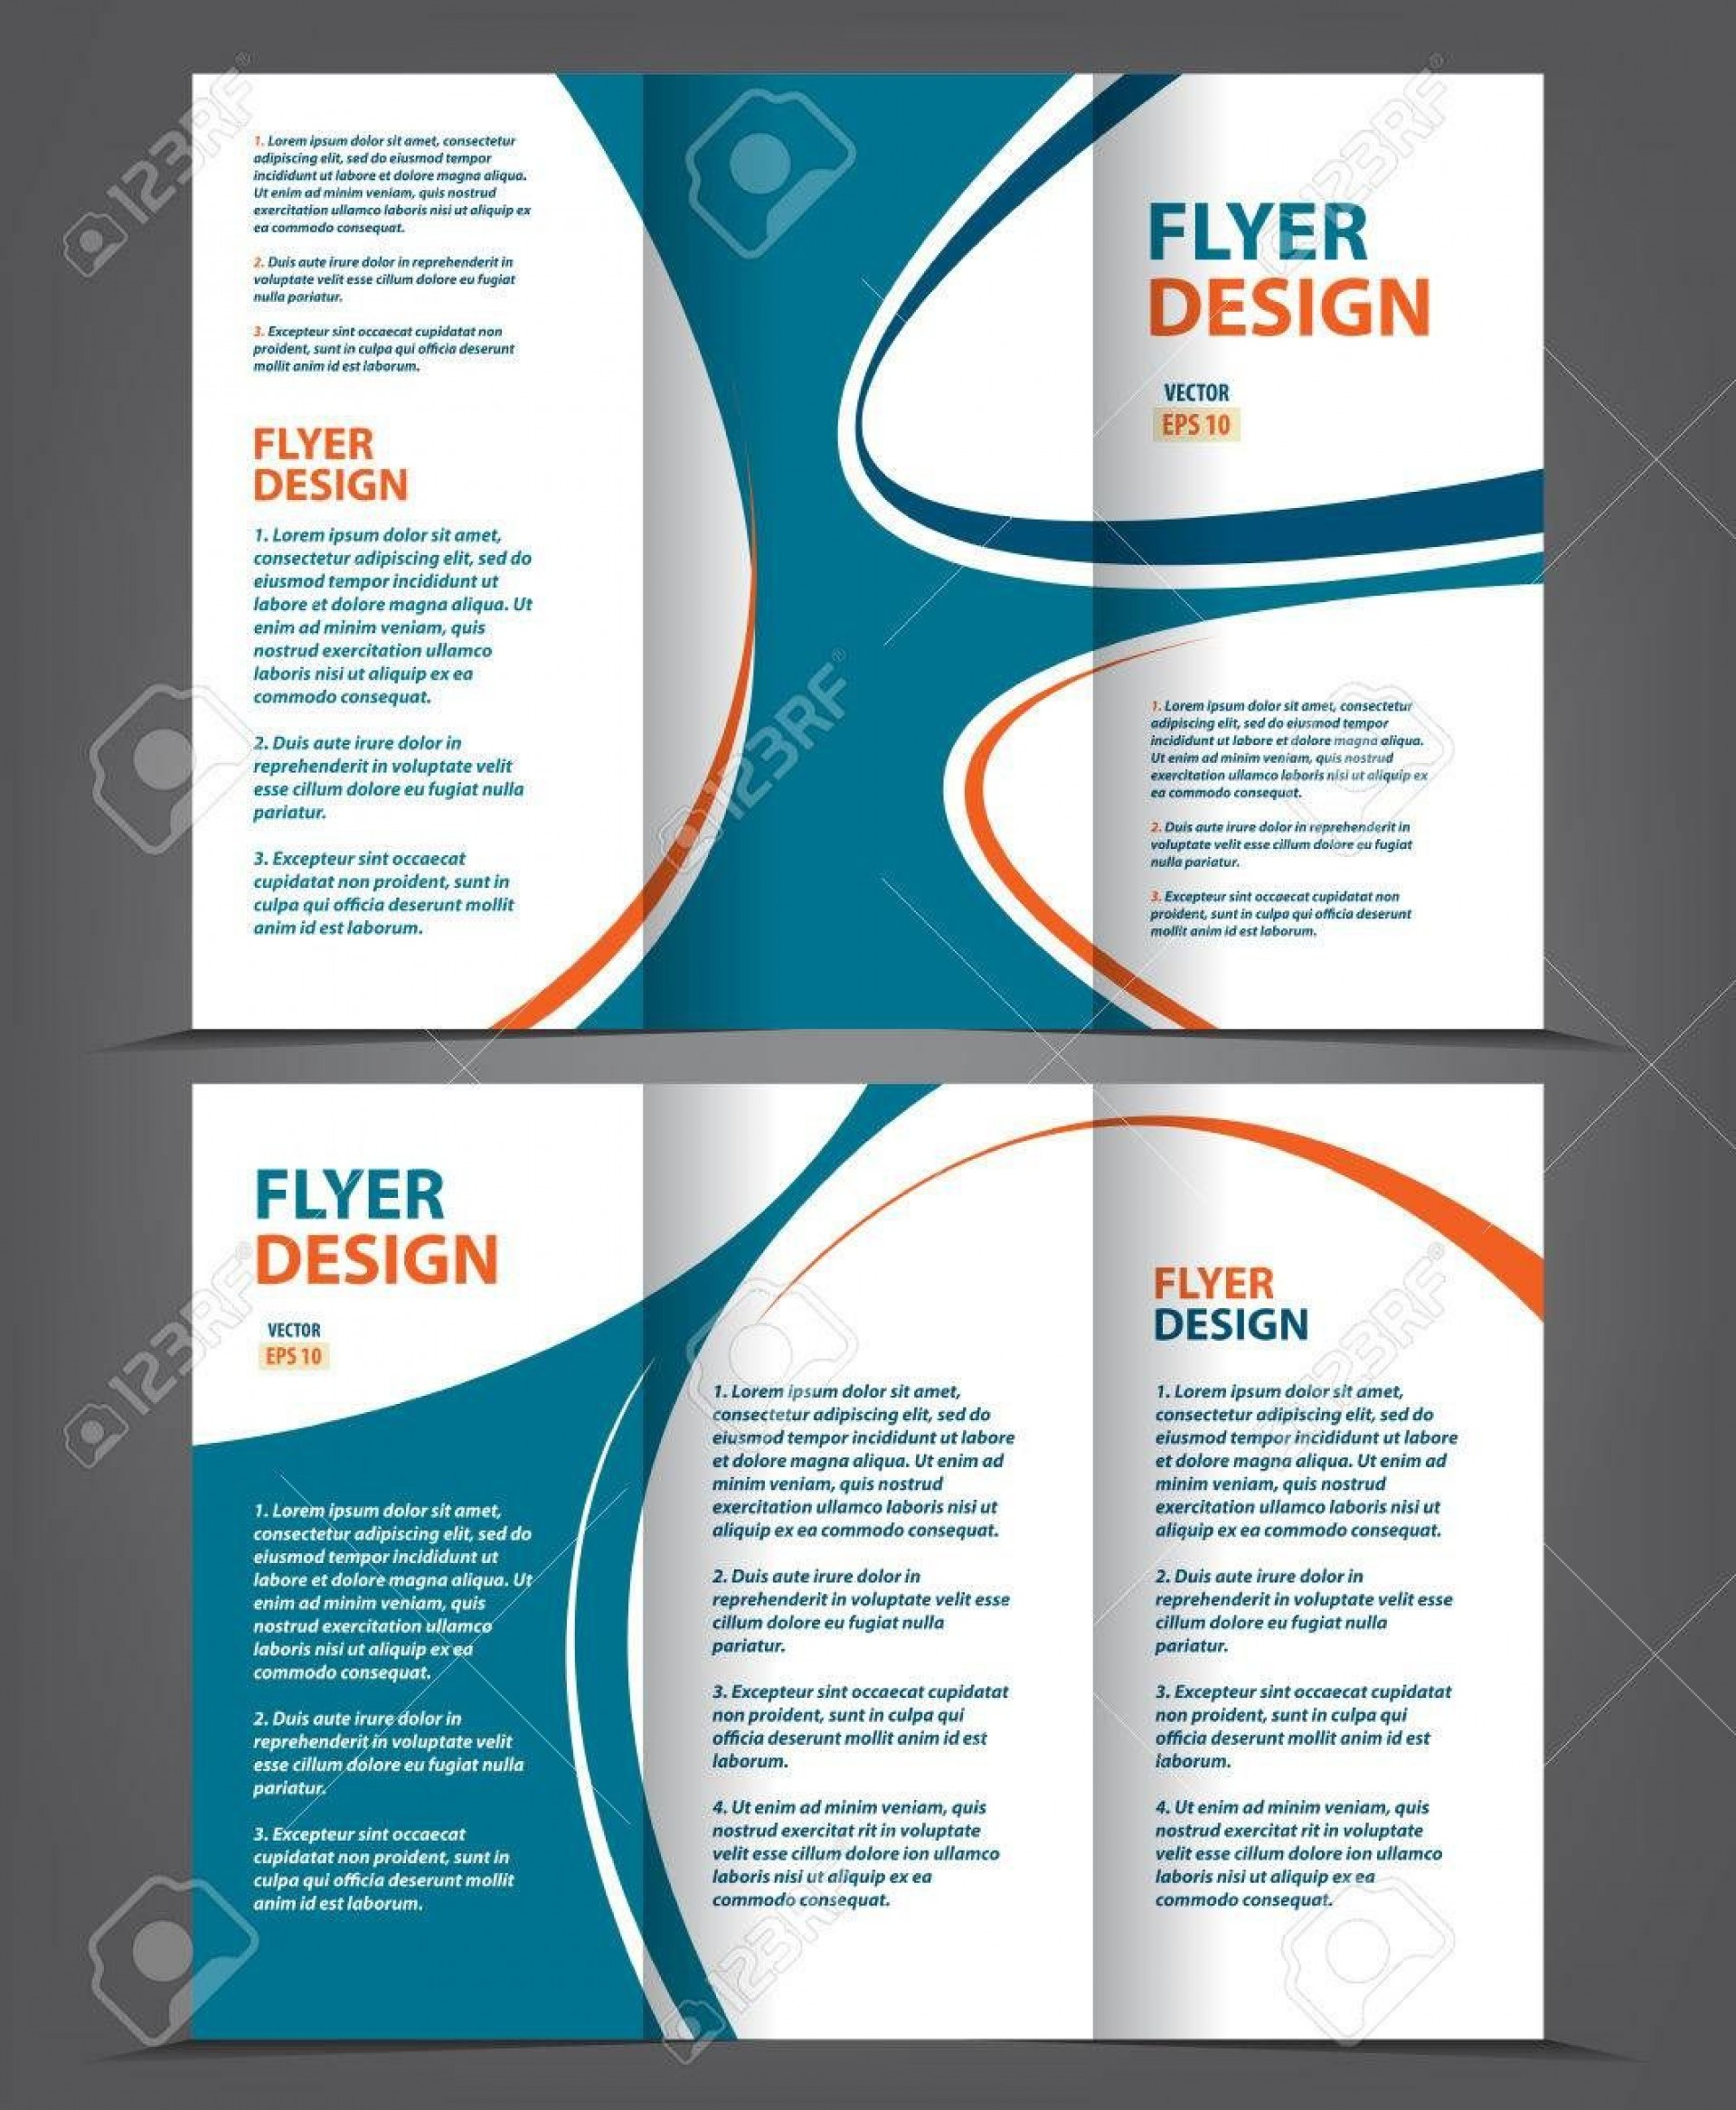 002 Frightening 3 Fold Brochure Template Highest Clarity  Templates For Free1920